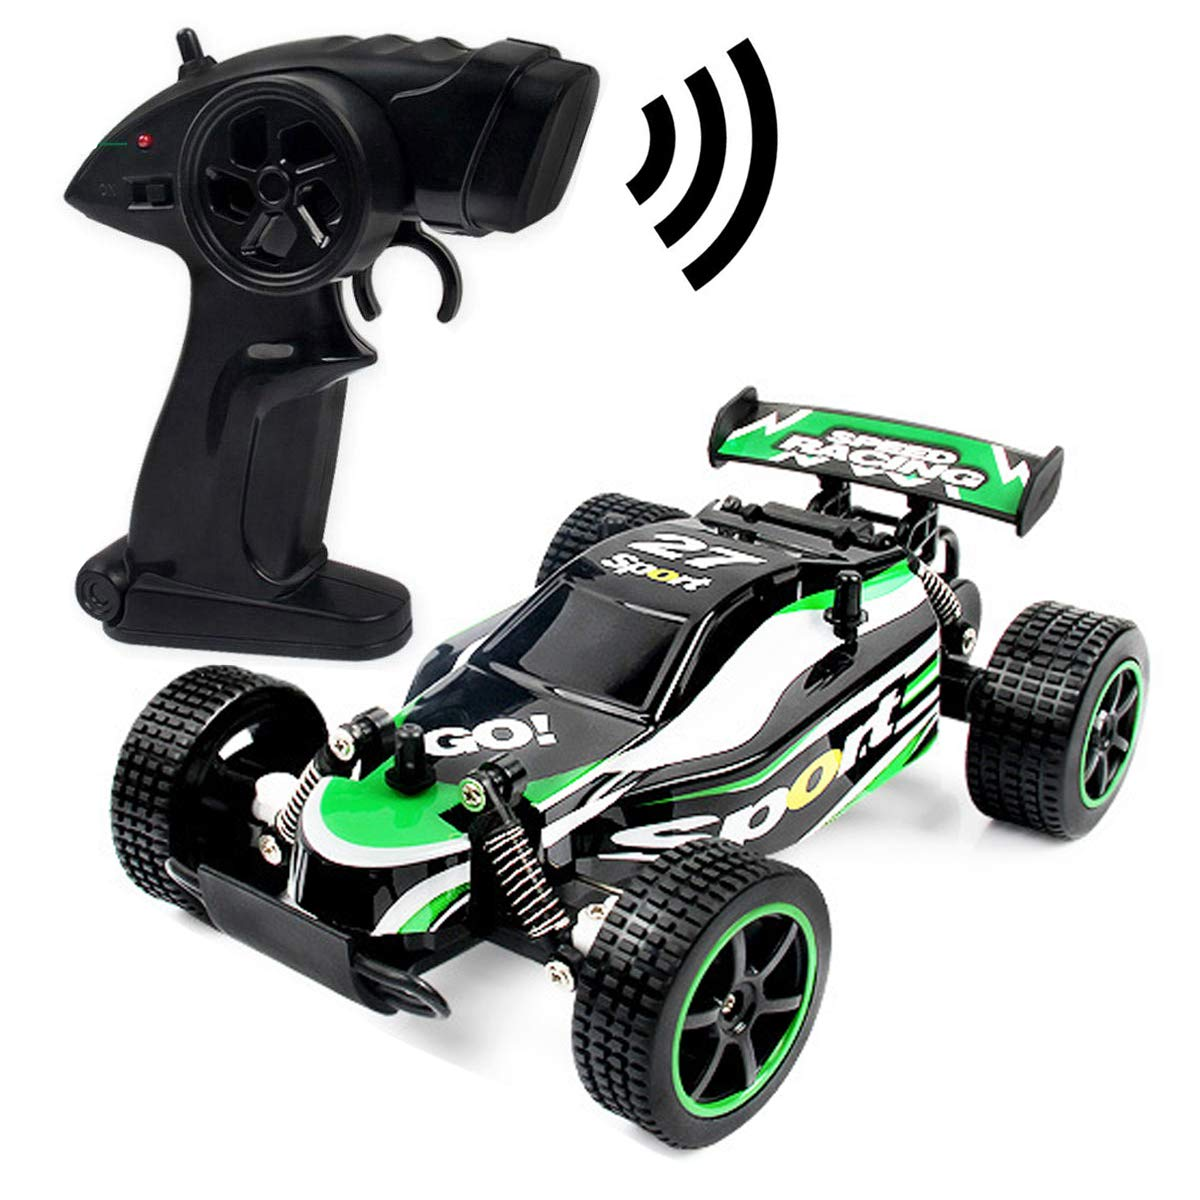 Blexy RC Cars Rremote Control Racing Car 2.4Ghz High Speed Rock Off-Road Vehicle 1:20 2WD Radio Remote Control Racing Toy Cars Electric Fast Race Buggy Hobby Car Green 211